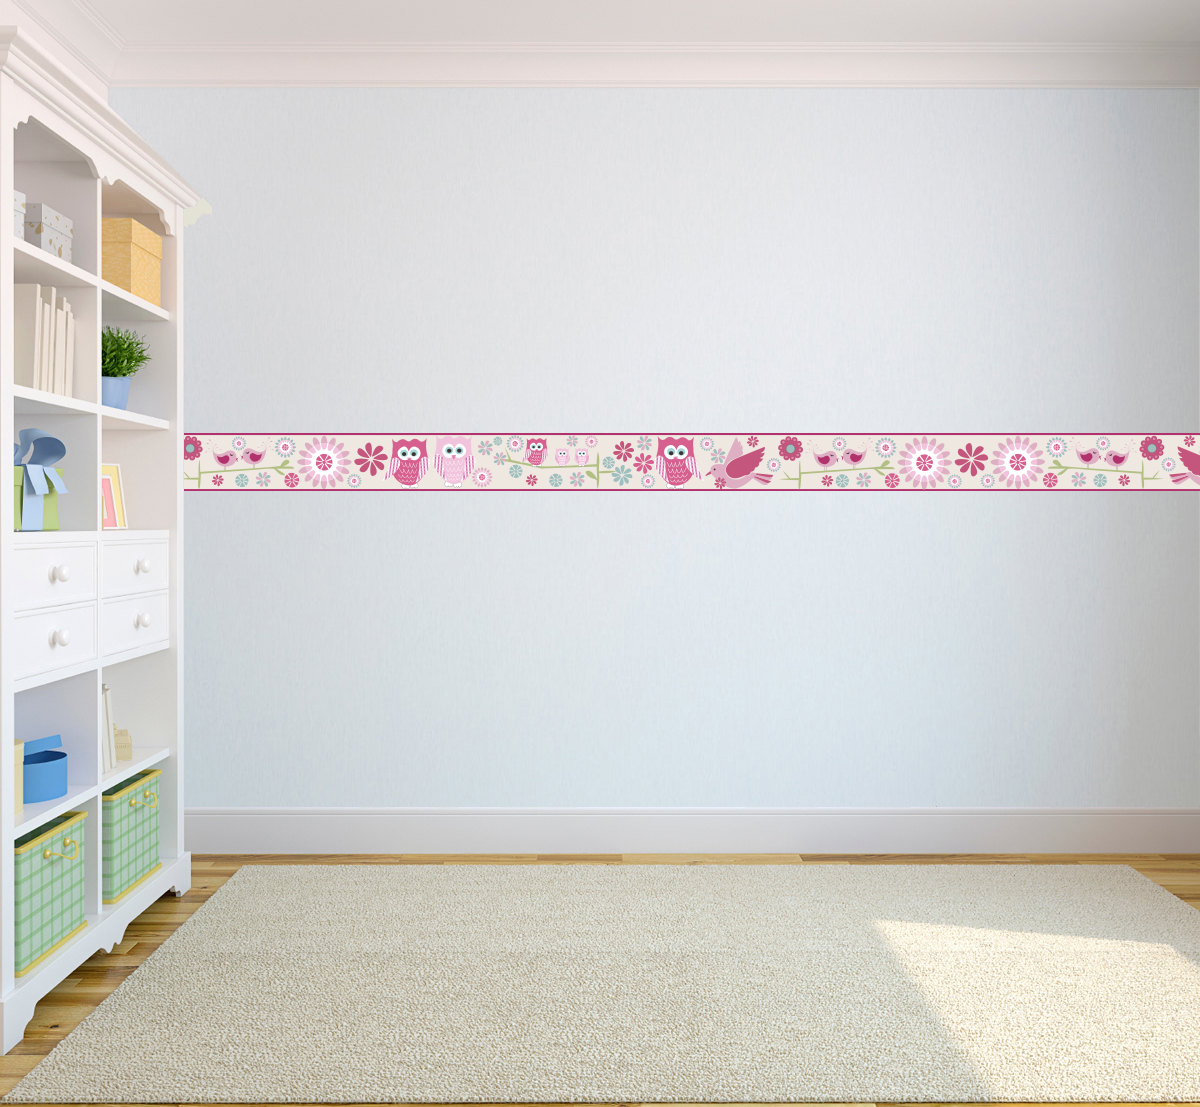 Download Wallpaper Borders Childrens Kids Nursery Boys Girls Bedroom ...